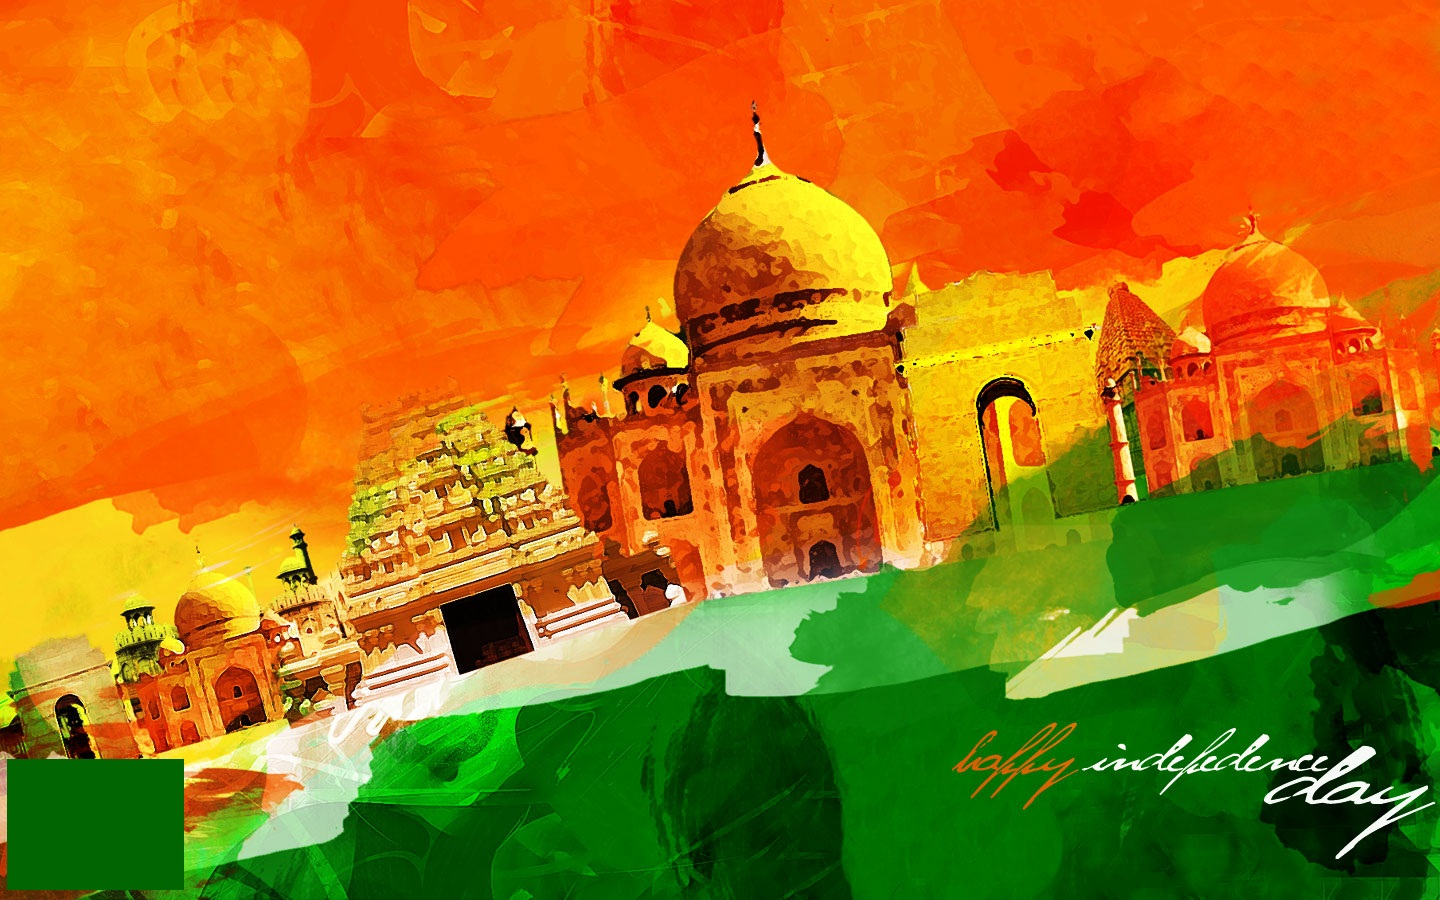 india a happy and prosperous nation Essay in essay format pygmalion happy and prosperous national home page » psychology related essays happy and prosperous nation improve answer history what you could do to make india a.